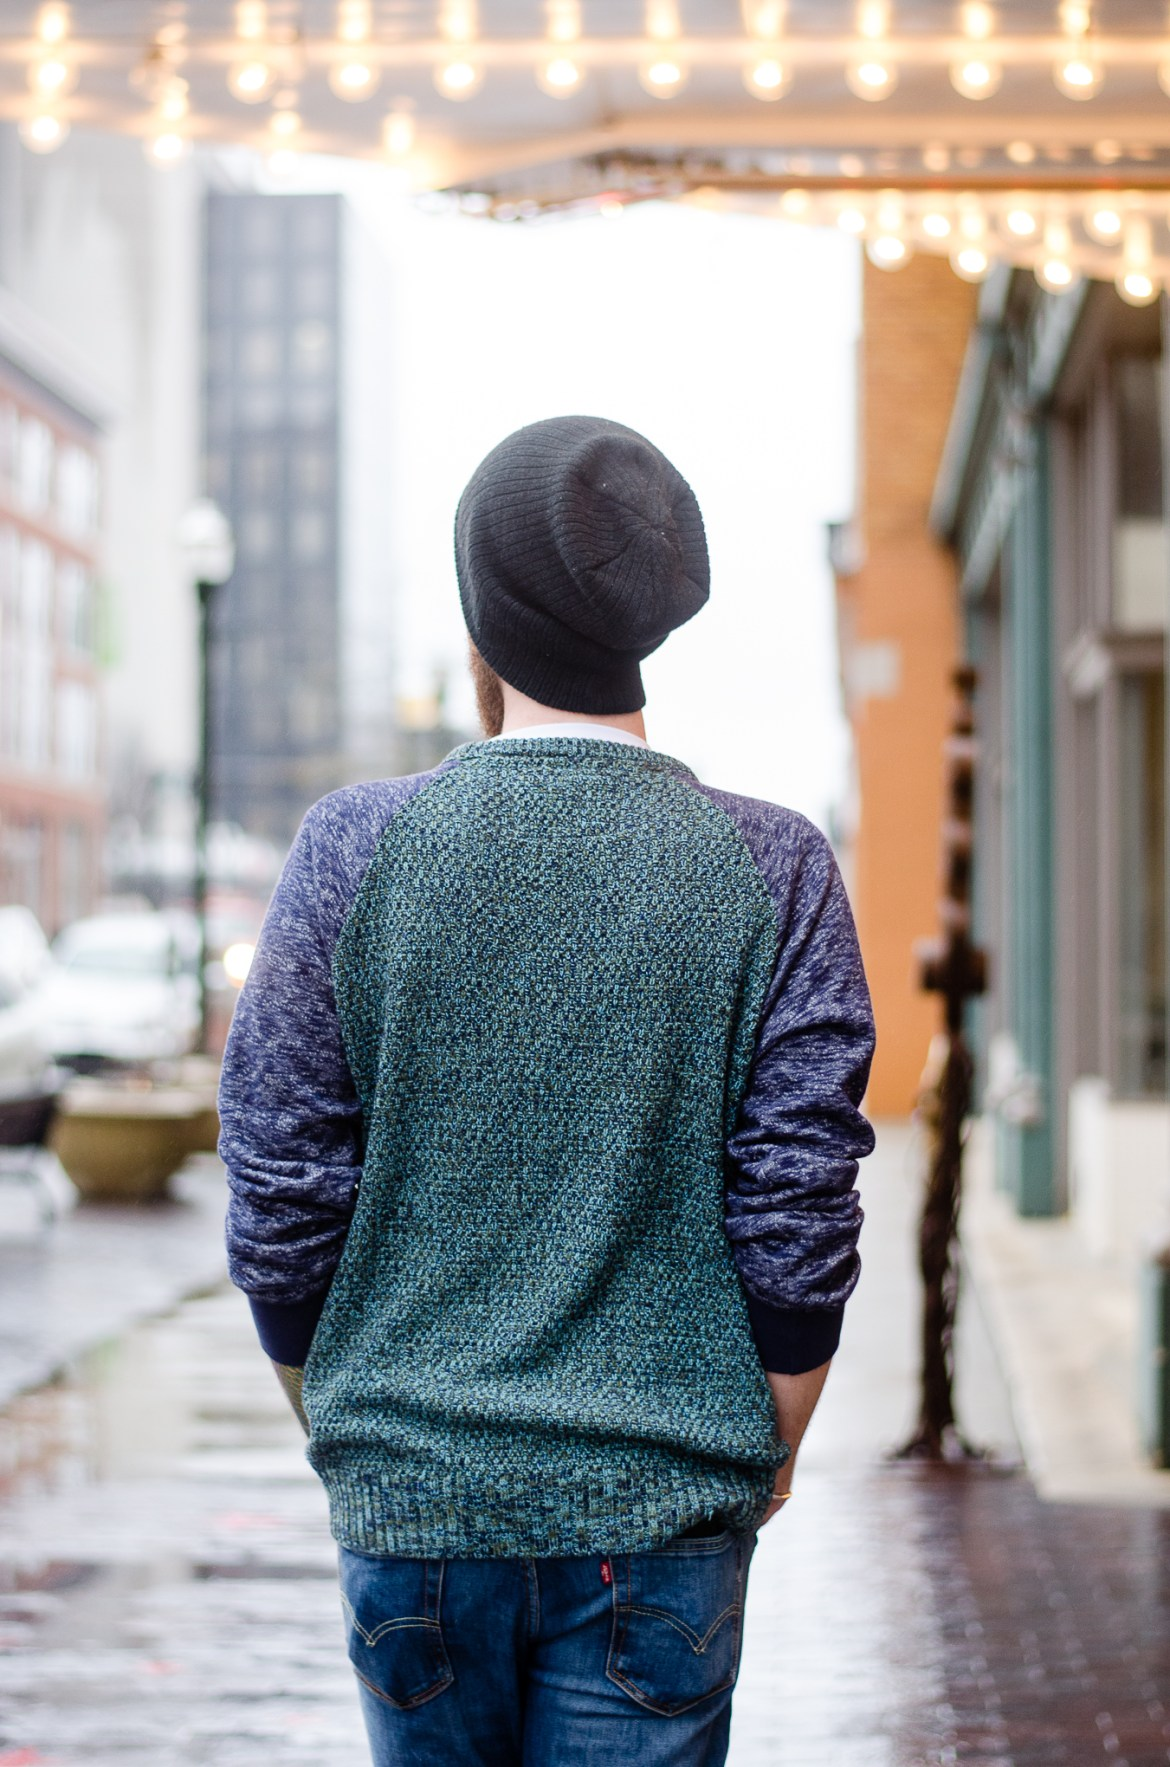 The Kentucky Gent, a men's fashion and lifestyle blogger, shares his growing pains as blogger.